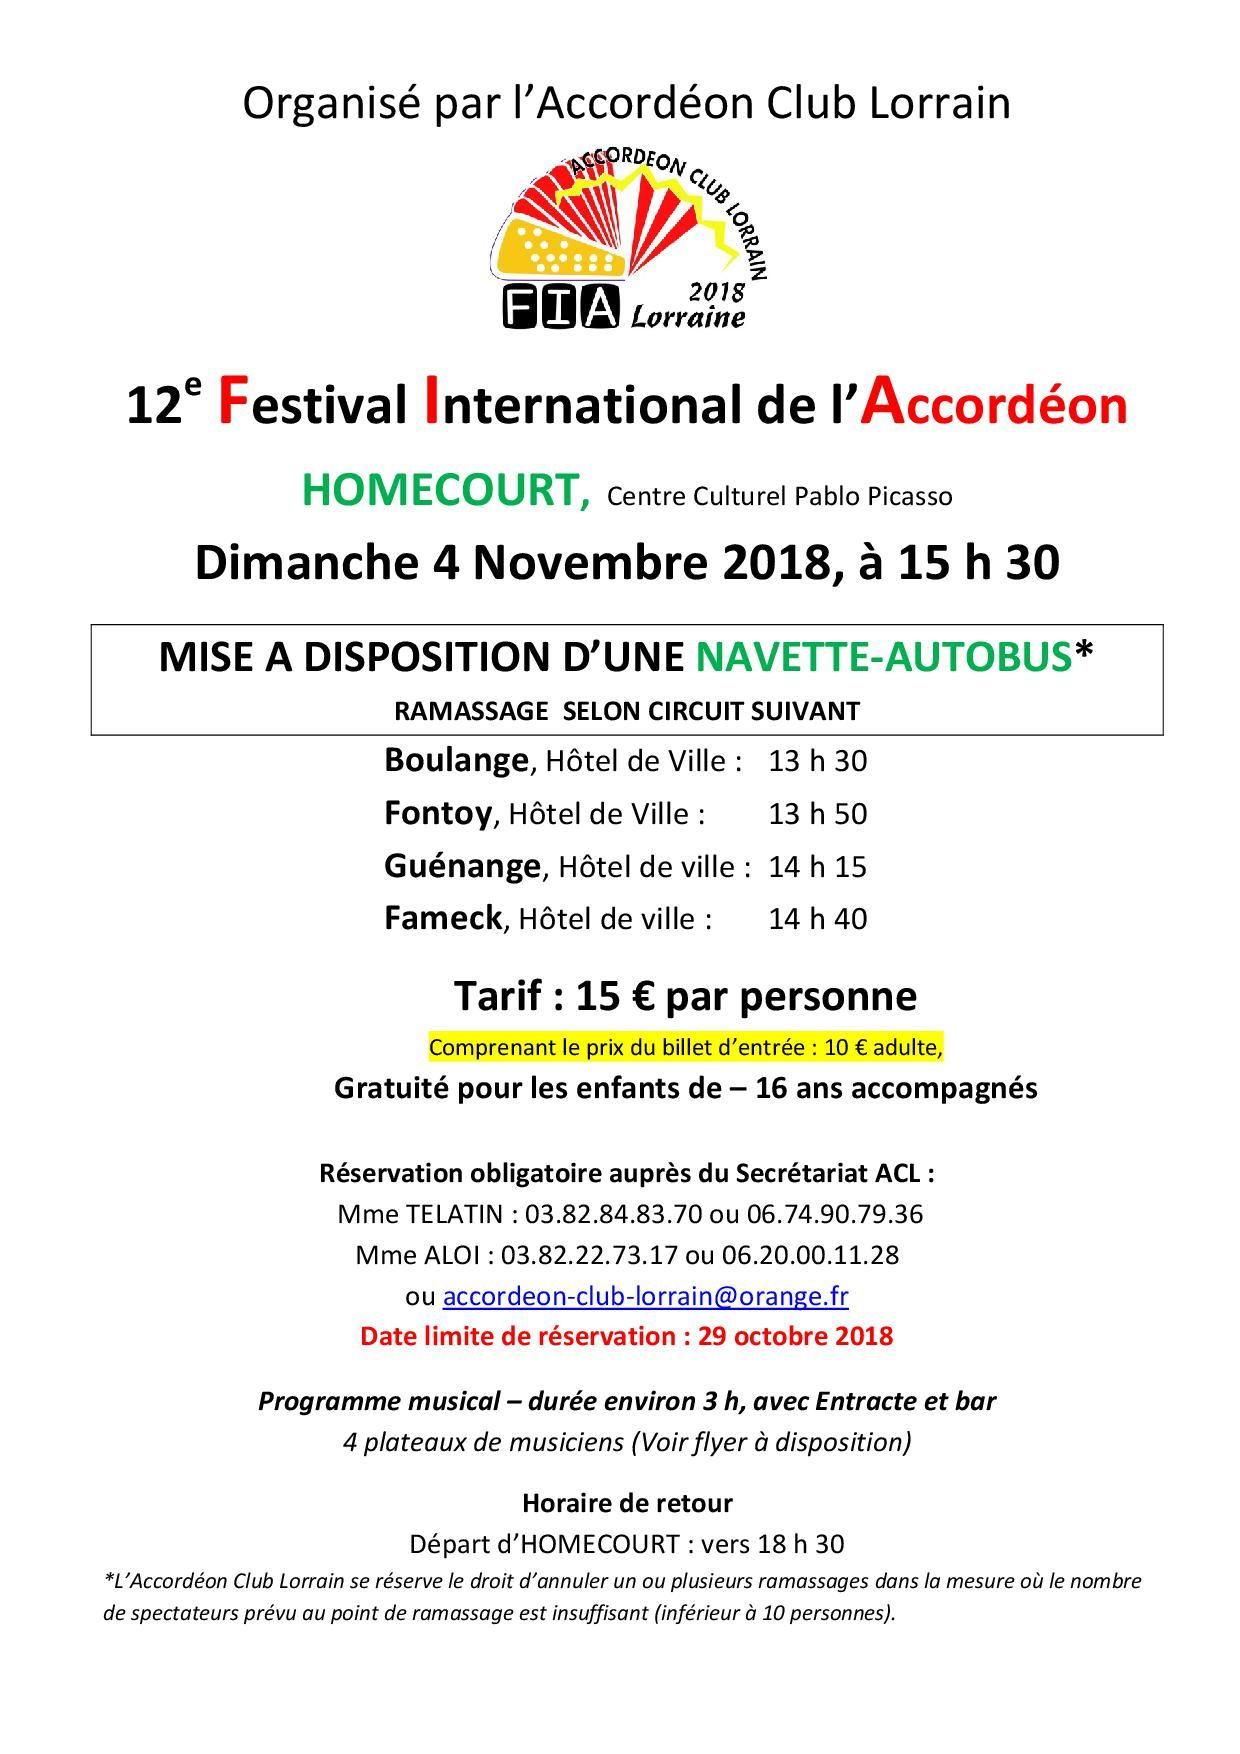 INFO SPECTATEUR BUS A DISPOSITION FIA 2018